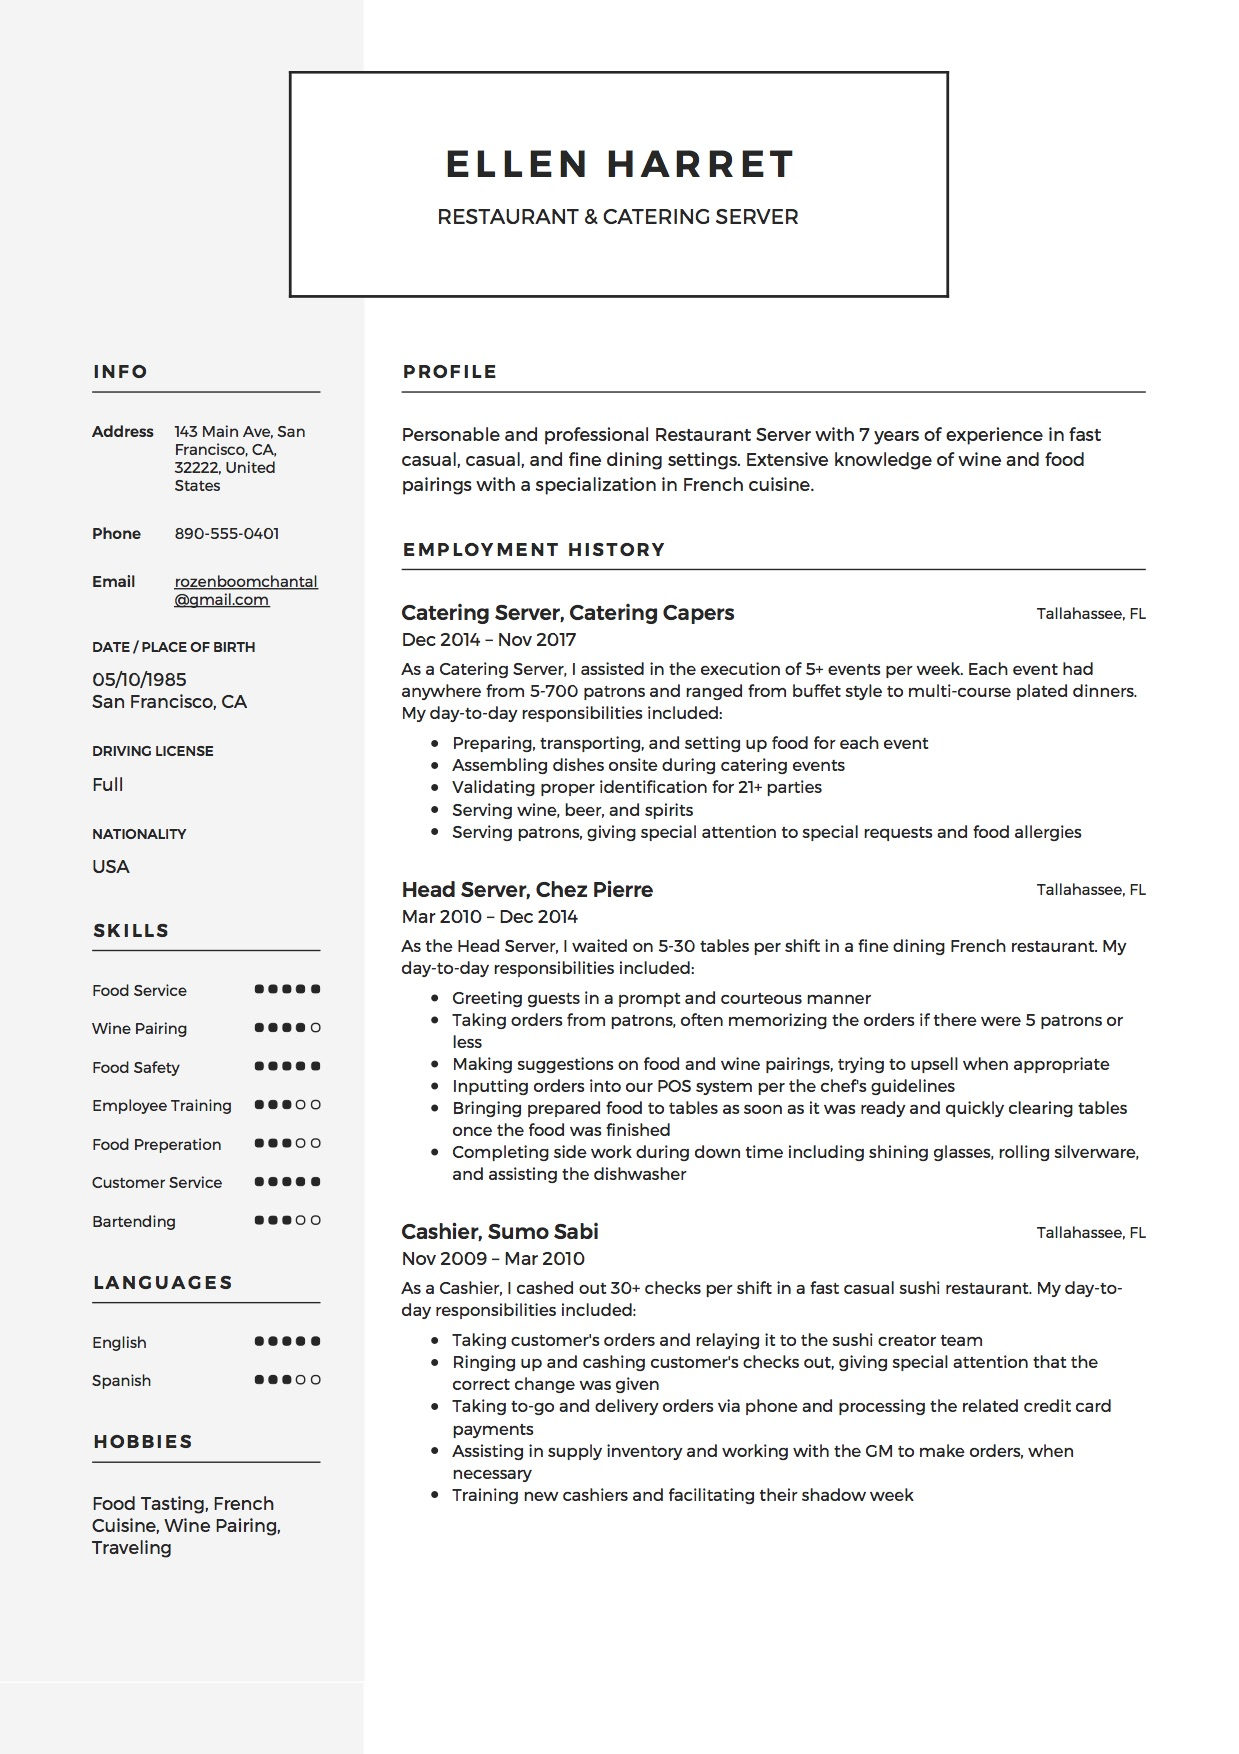 Restaurant Server Resume Samples  Restaurant Server Resume Sample